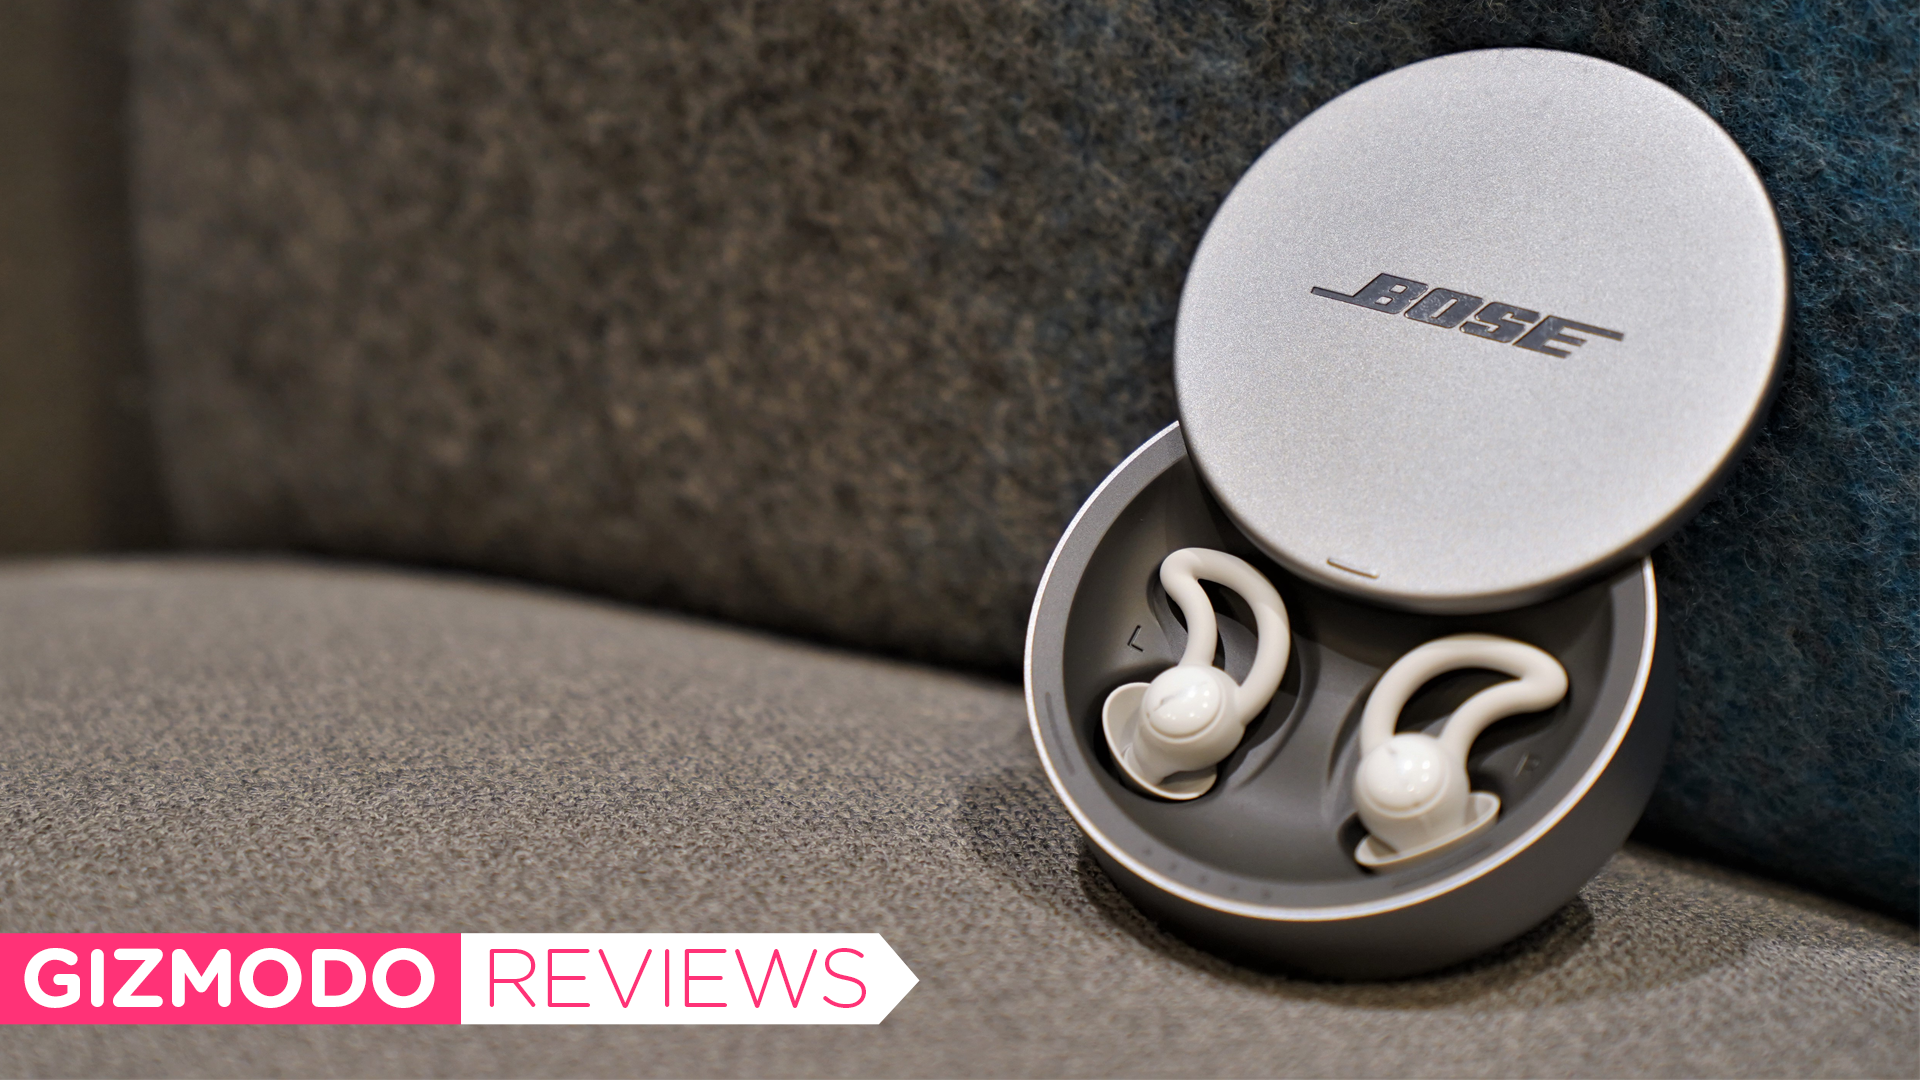 audio bose bose-sleepbuds bose-sleepbuds-review feature headphones review sleep